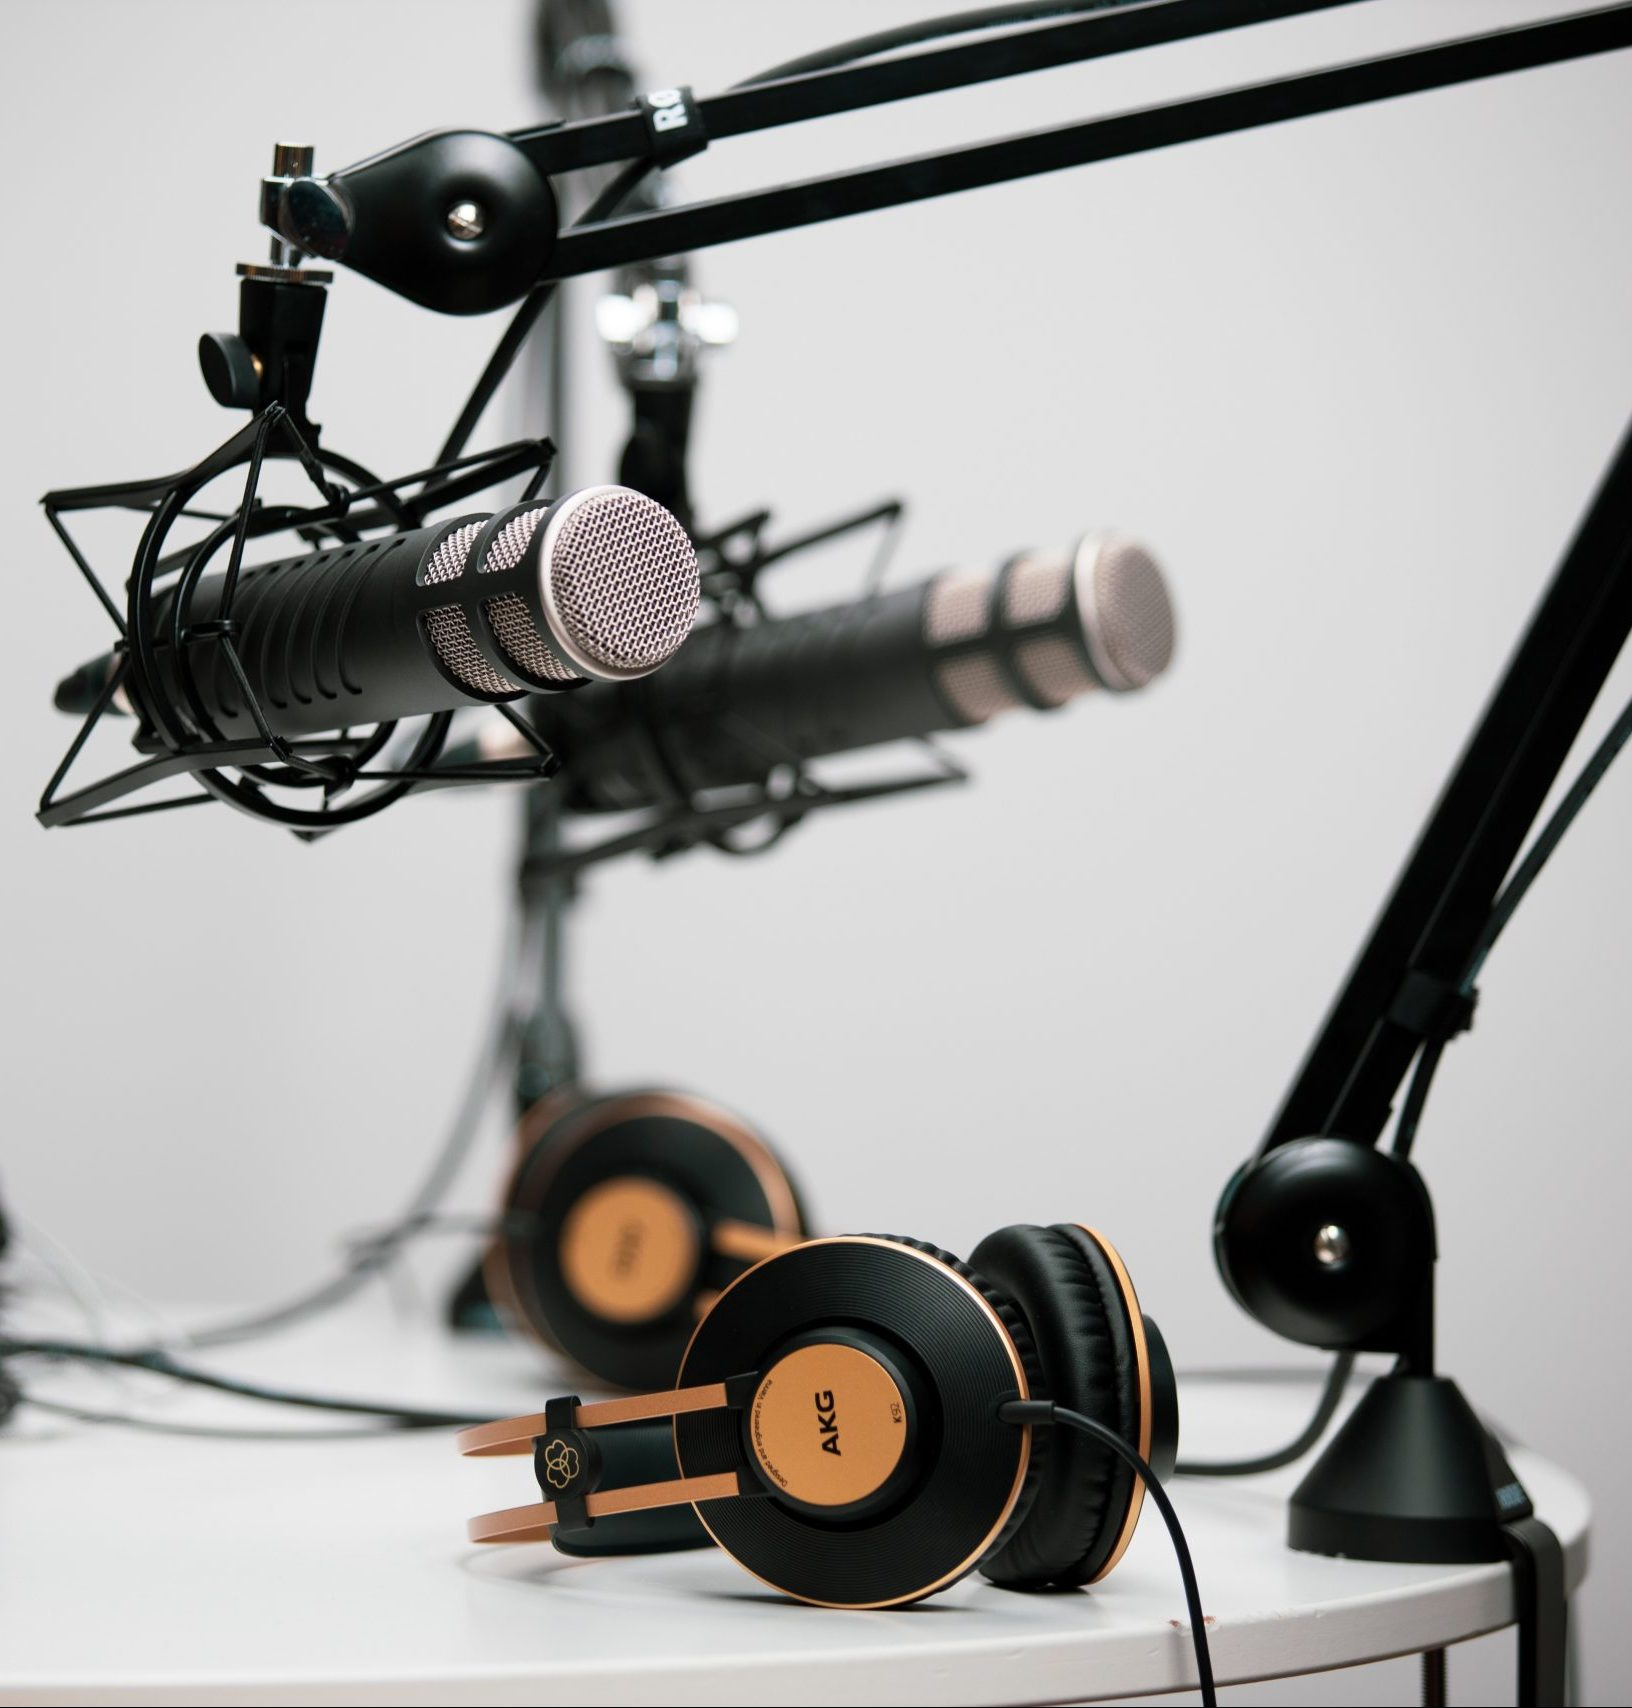 Podcast Microphones and Headphones